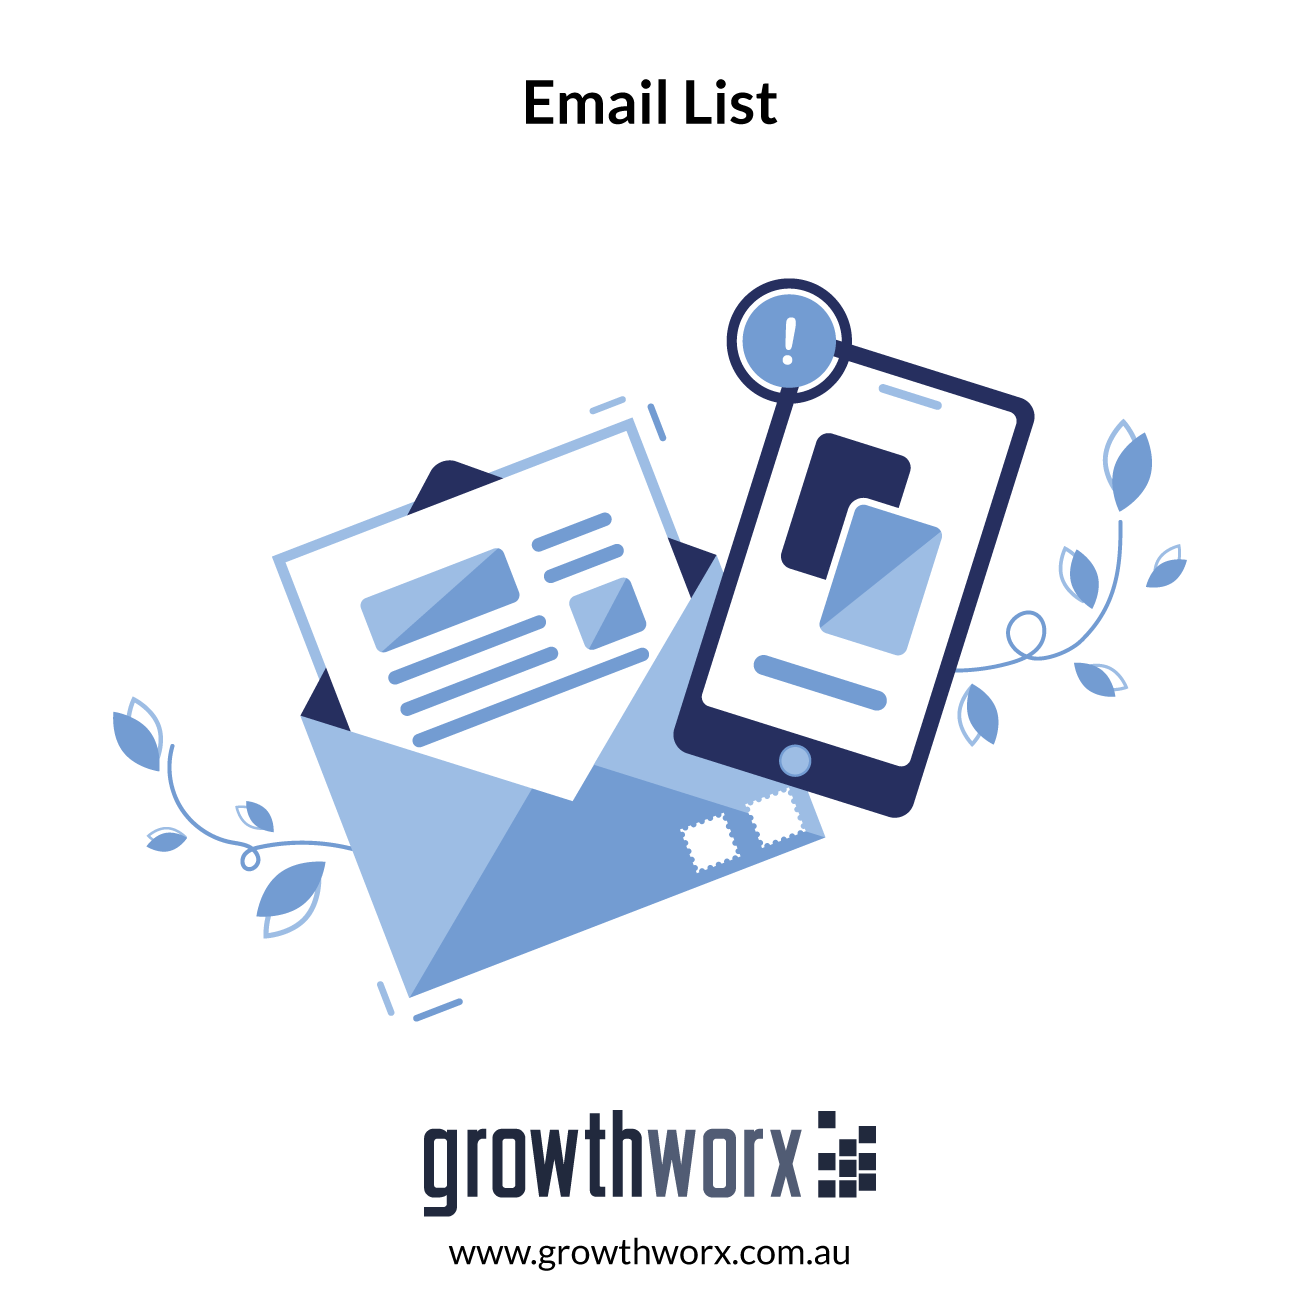 I will get email list organically for you 1